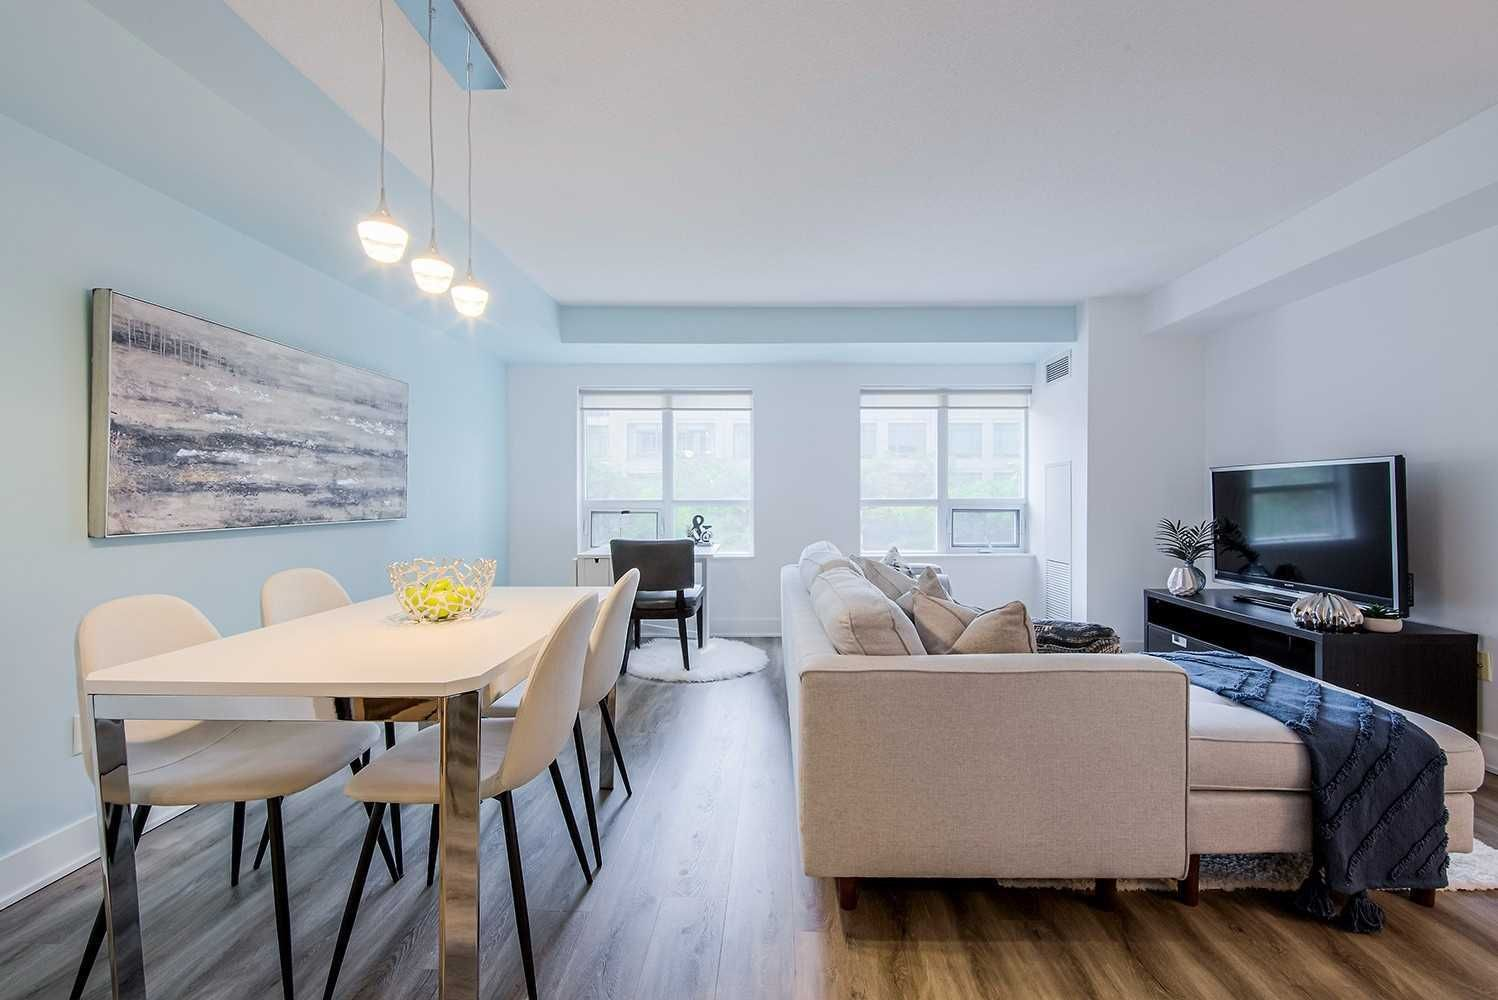 20 Blue Jays Way, unit 219 for sale in Toronto - image #1